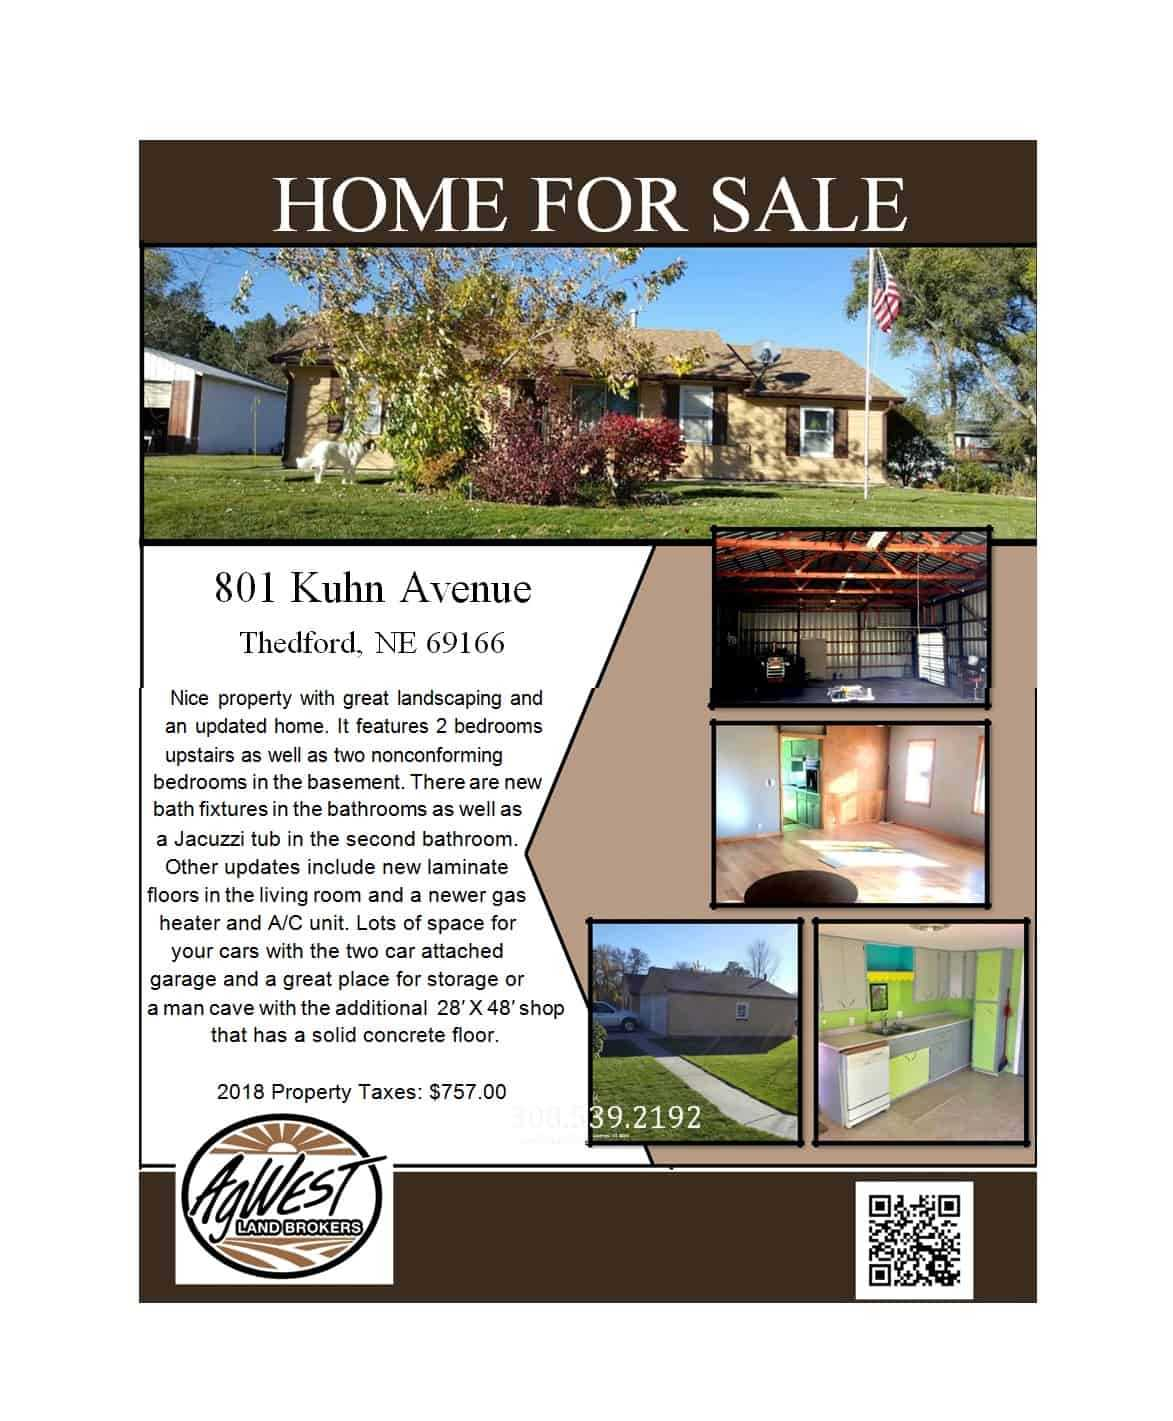 47 Amazing House For Sale Flyers (100% Free) ᐅ Template Lab Within Free House For Sale Flyer Templates